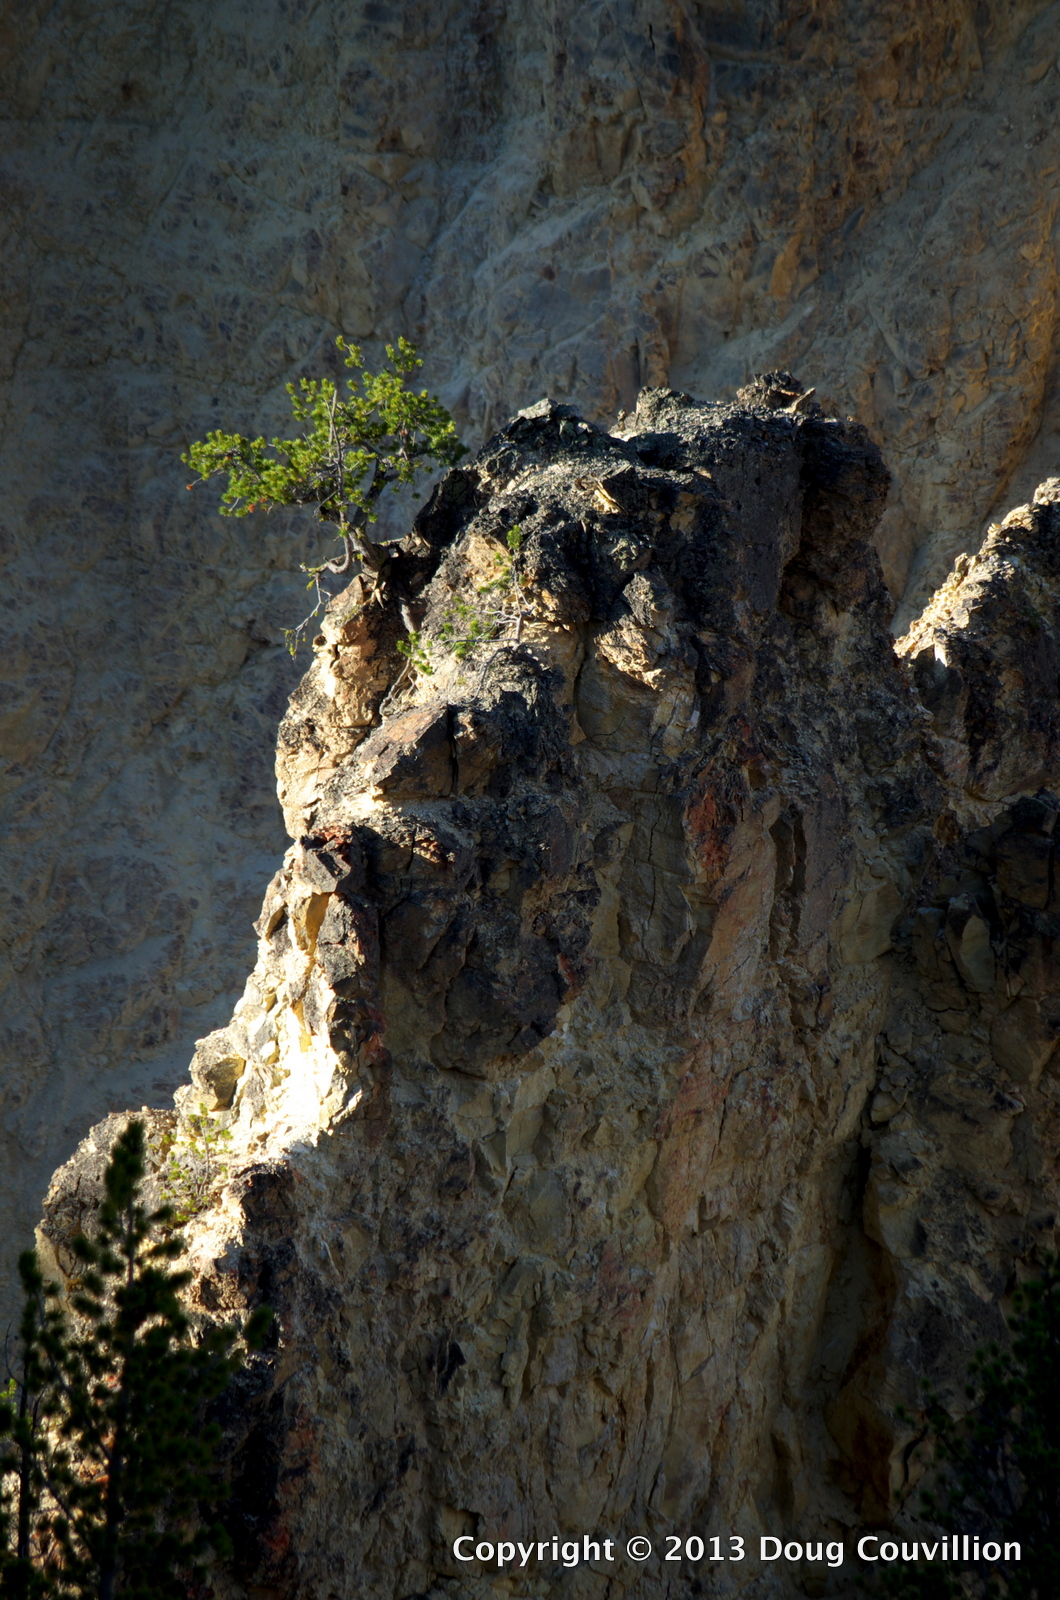 photograph of a single tree growing at the top of a cliff